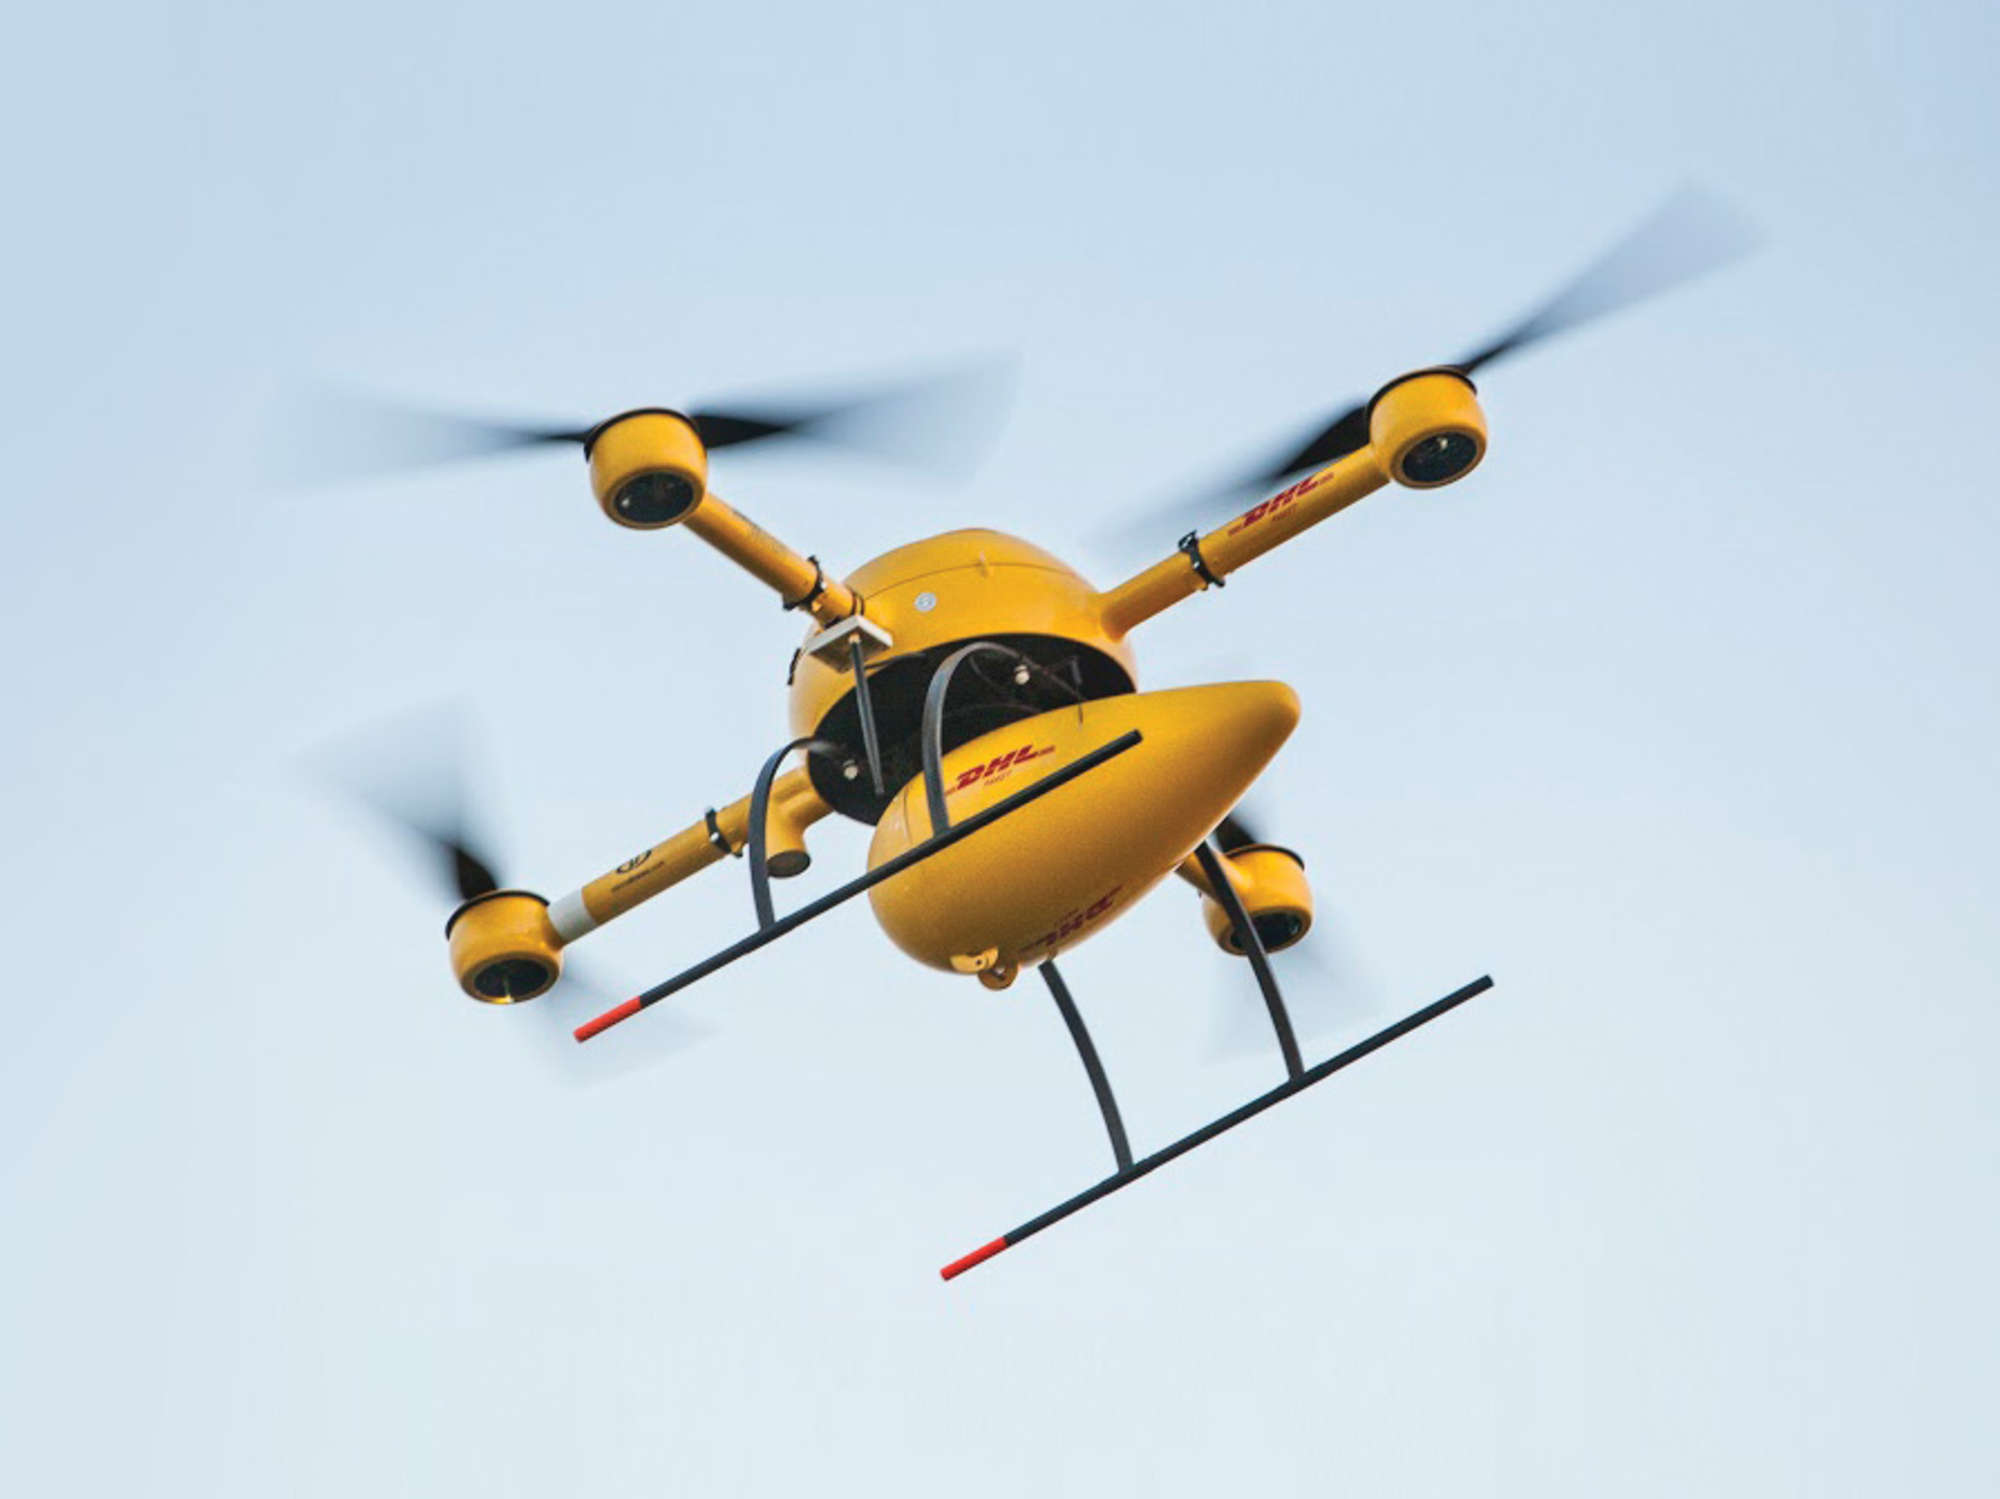 bown2015-aerospace-dhlparcelcopter